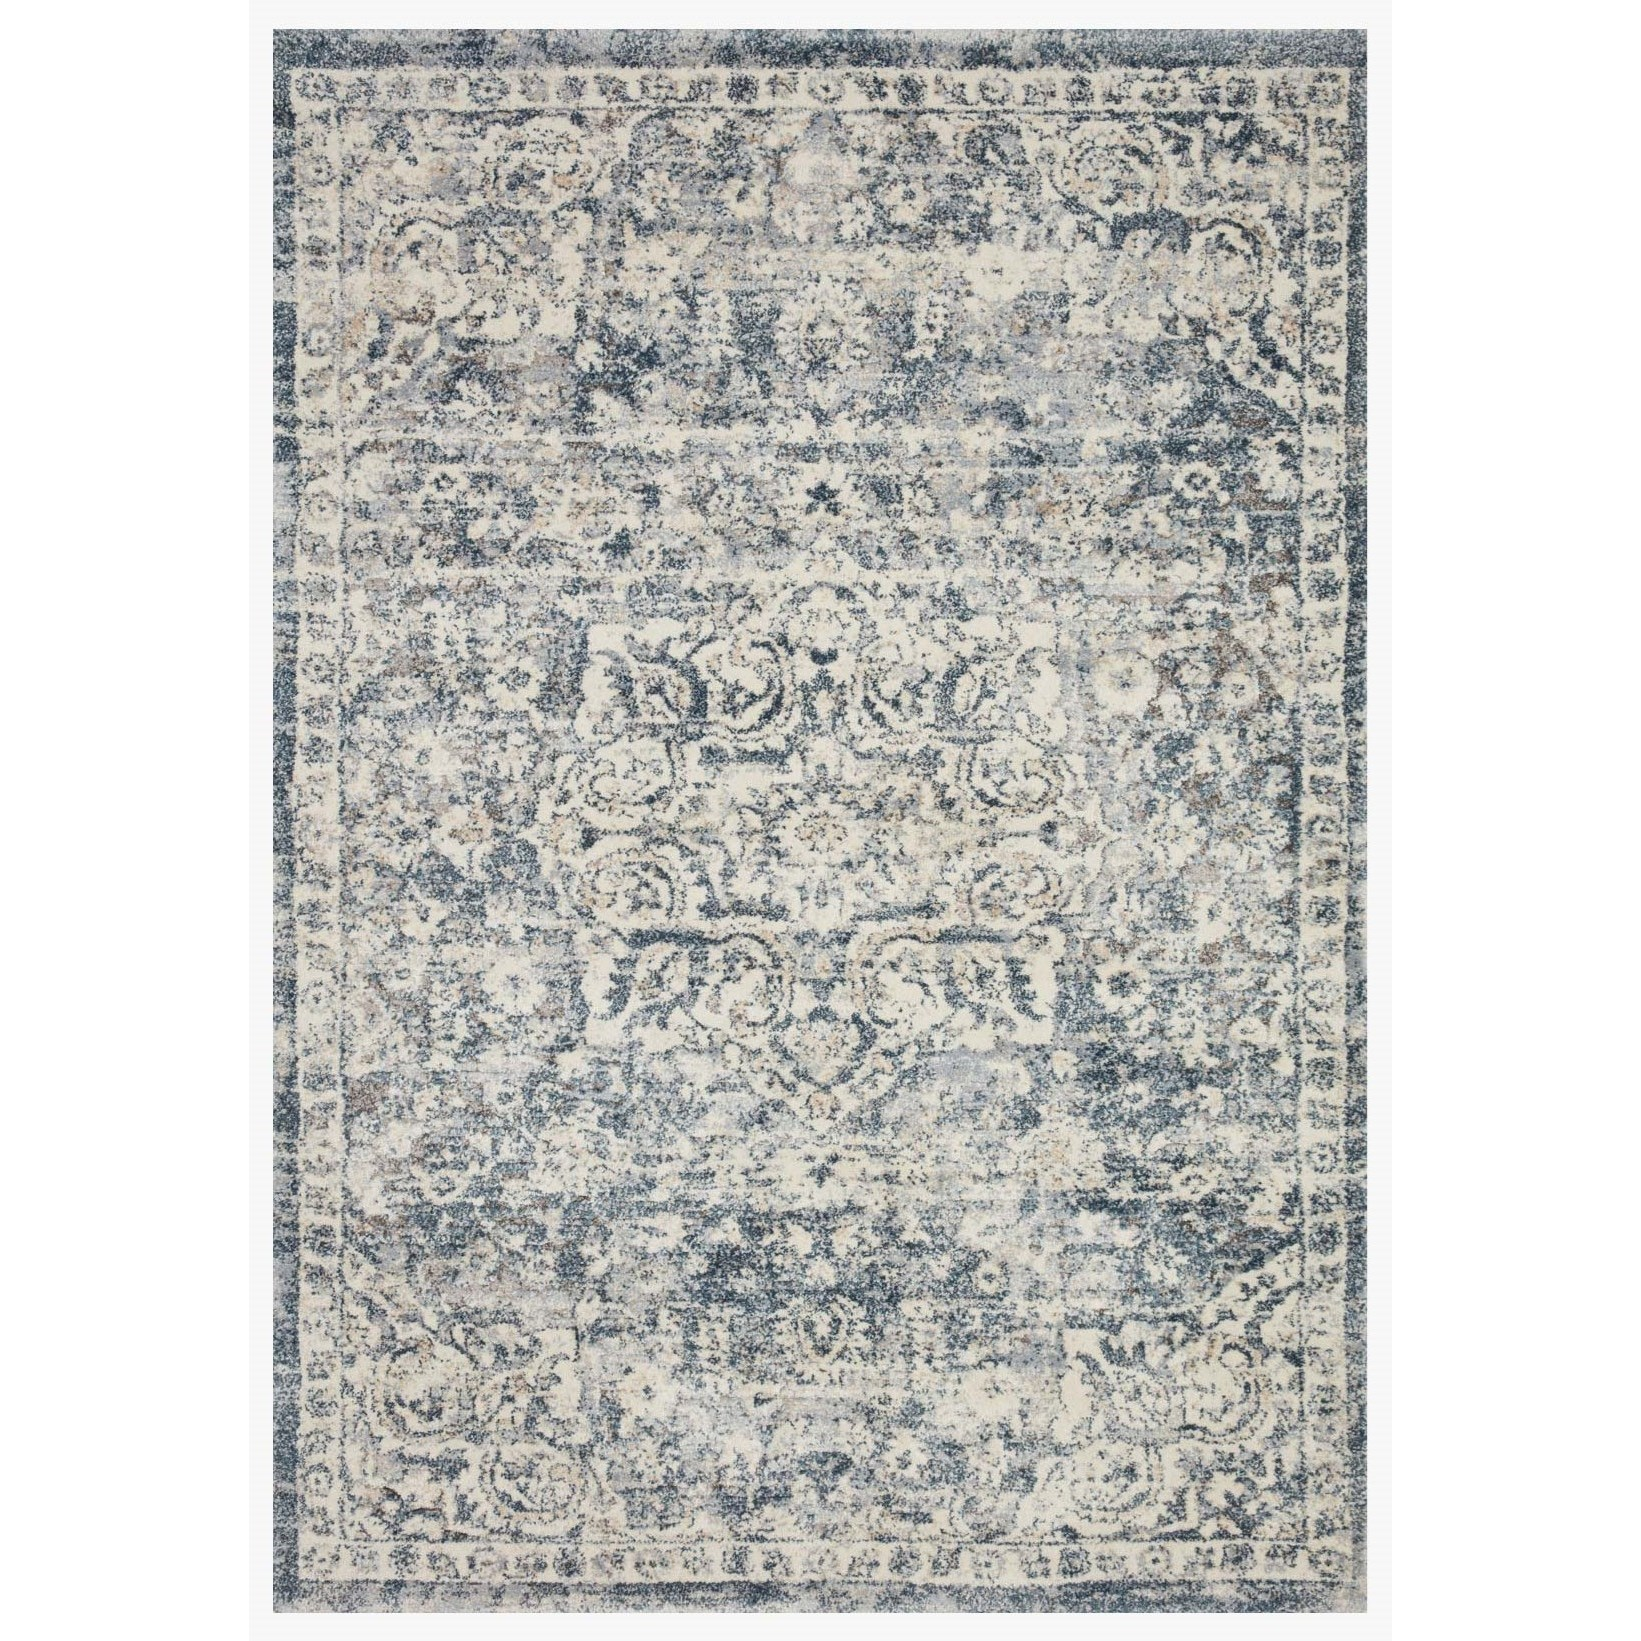 """Theory 7'10"""" x 10'10"""" Ivory / Blue Rug by Loloi Rugs at Virginia Furniture Market"""